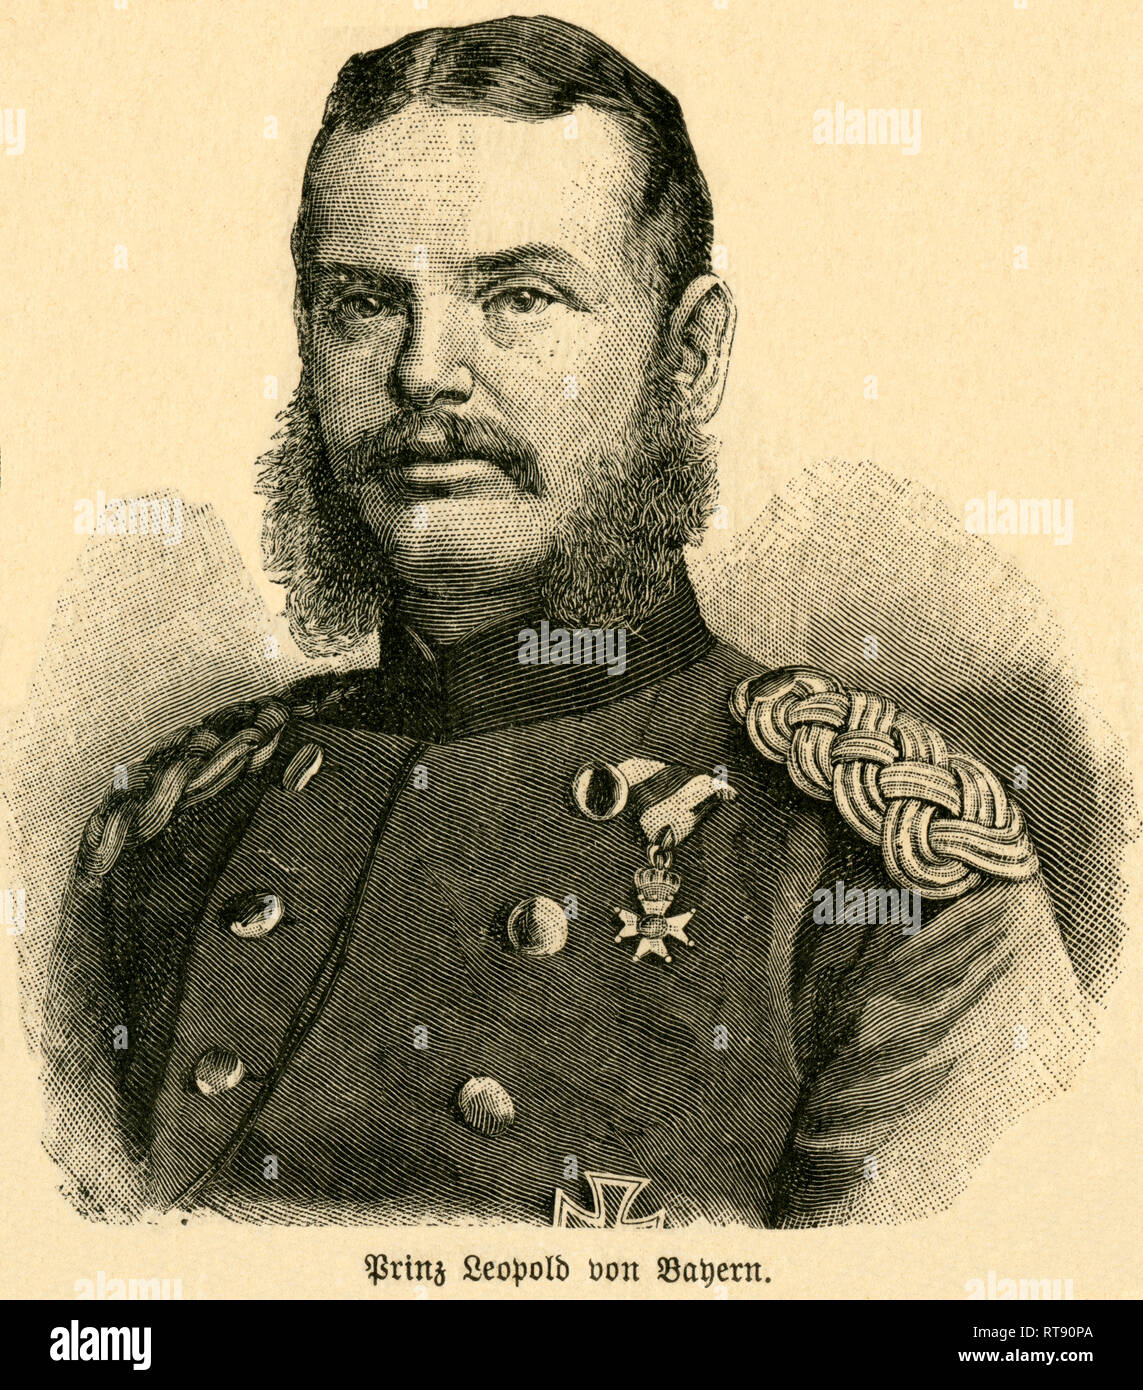 Prince Leopold of Bavaria, Field Marshall, Prince Leopold of Bavaria, portrait from: 'Deutschlands Heerführer' (German military leader), 1640-1894, portrayed by Sprößer, publishing house Ferdinand Hirt and son, Leipzig, 1895., Additional-Rights-Clearance-Info-Not-Available - Stock Image